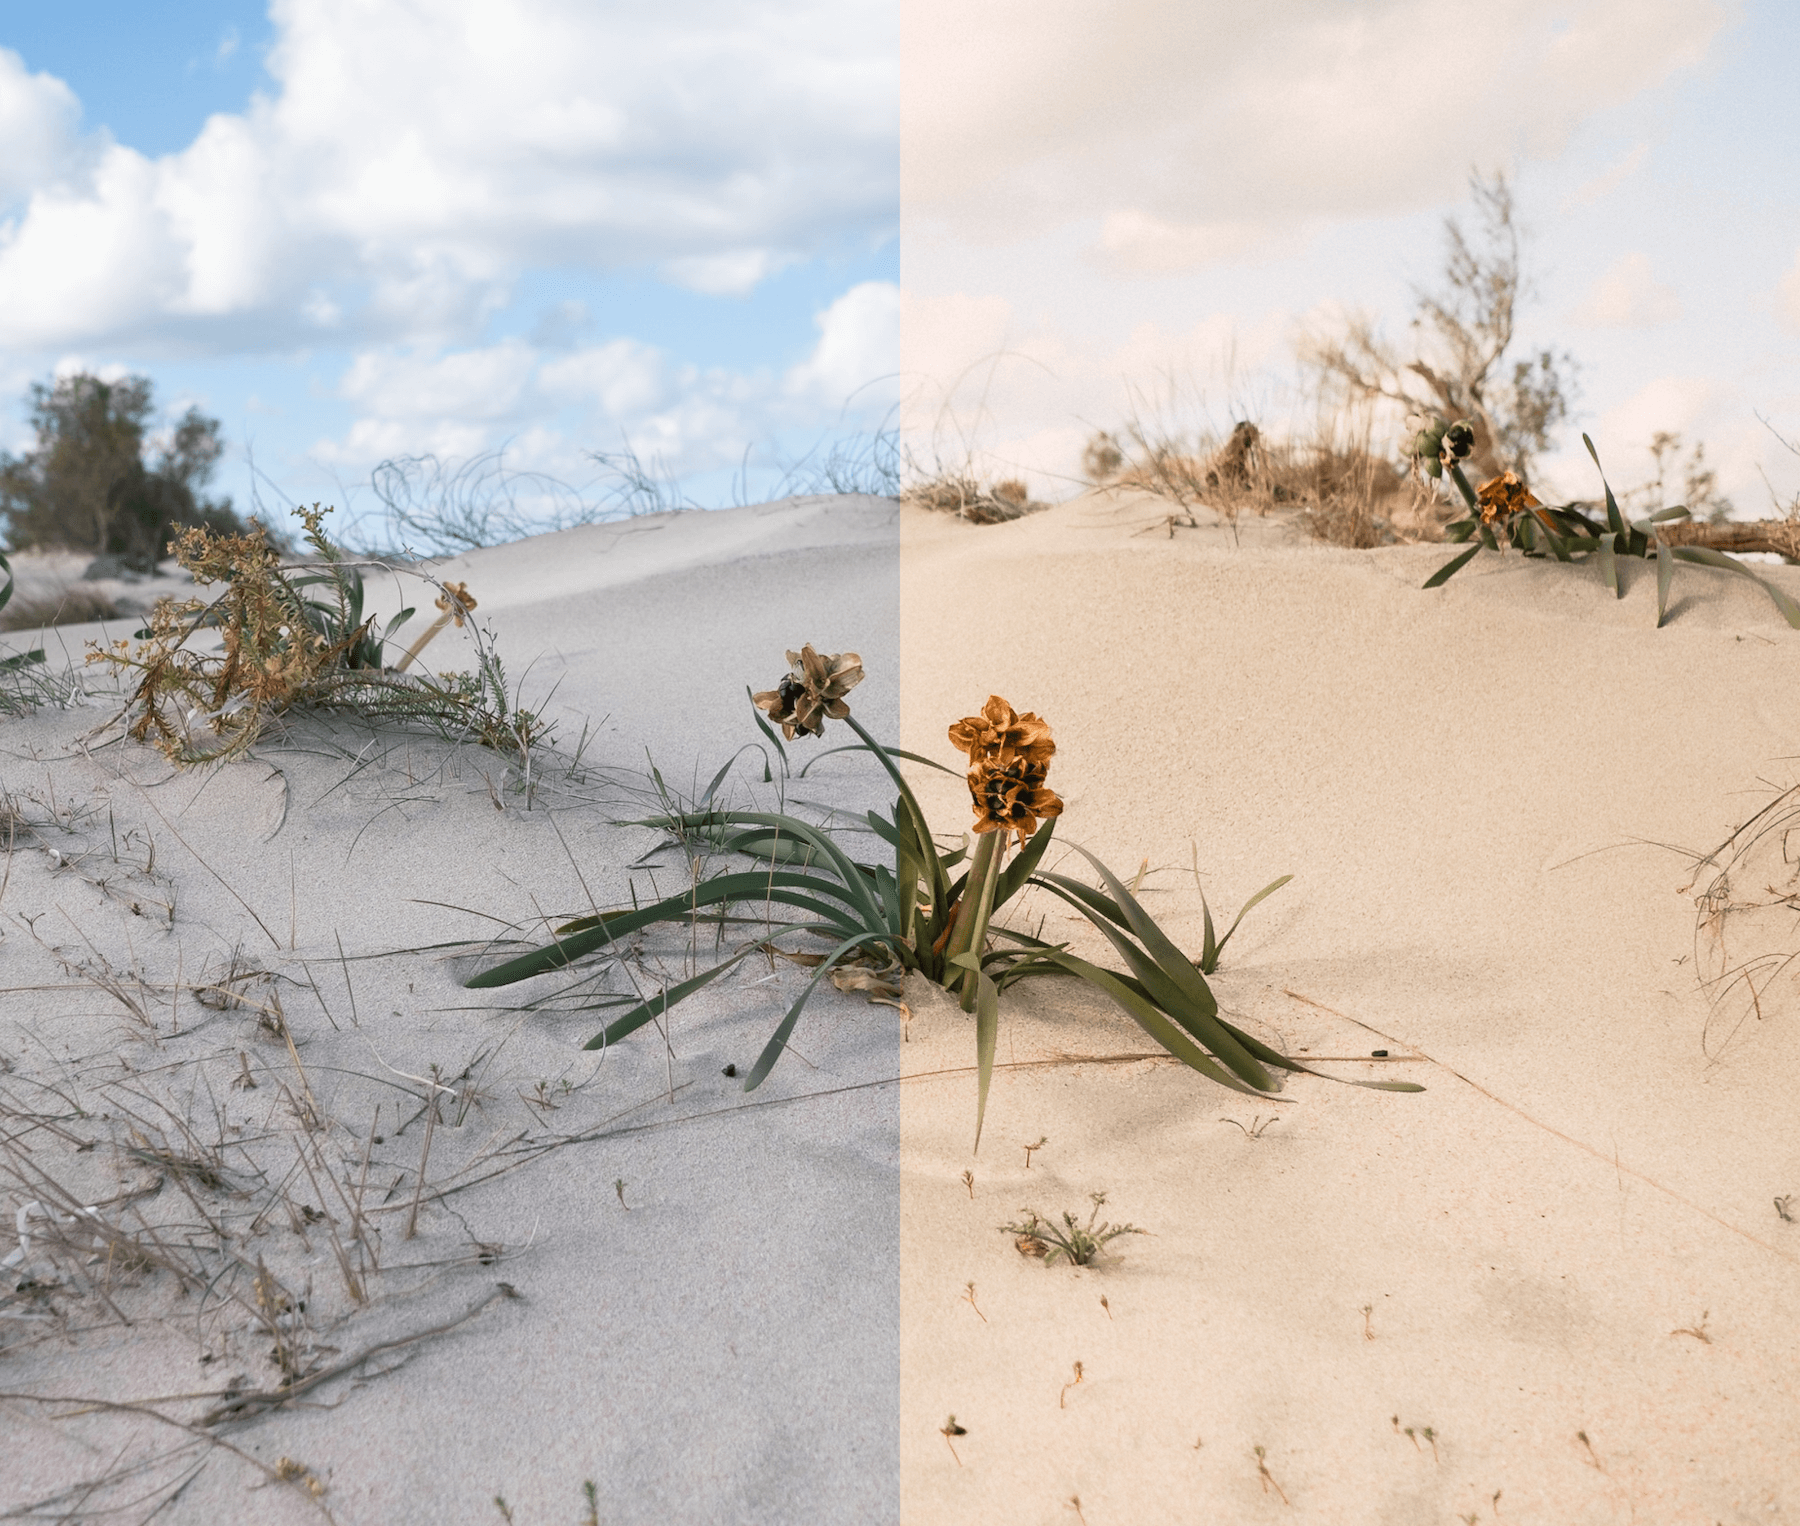 Desert flower photo before and after preset